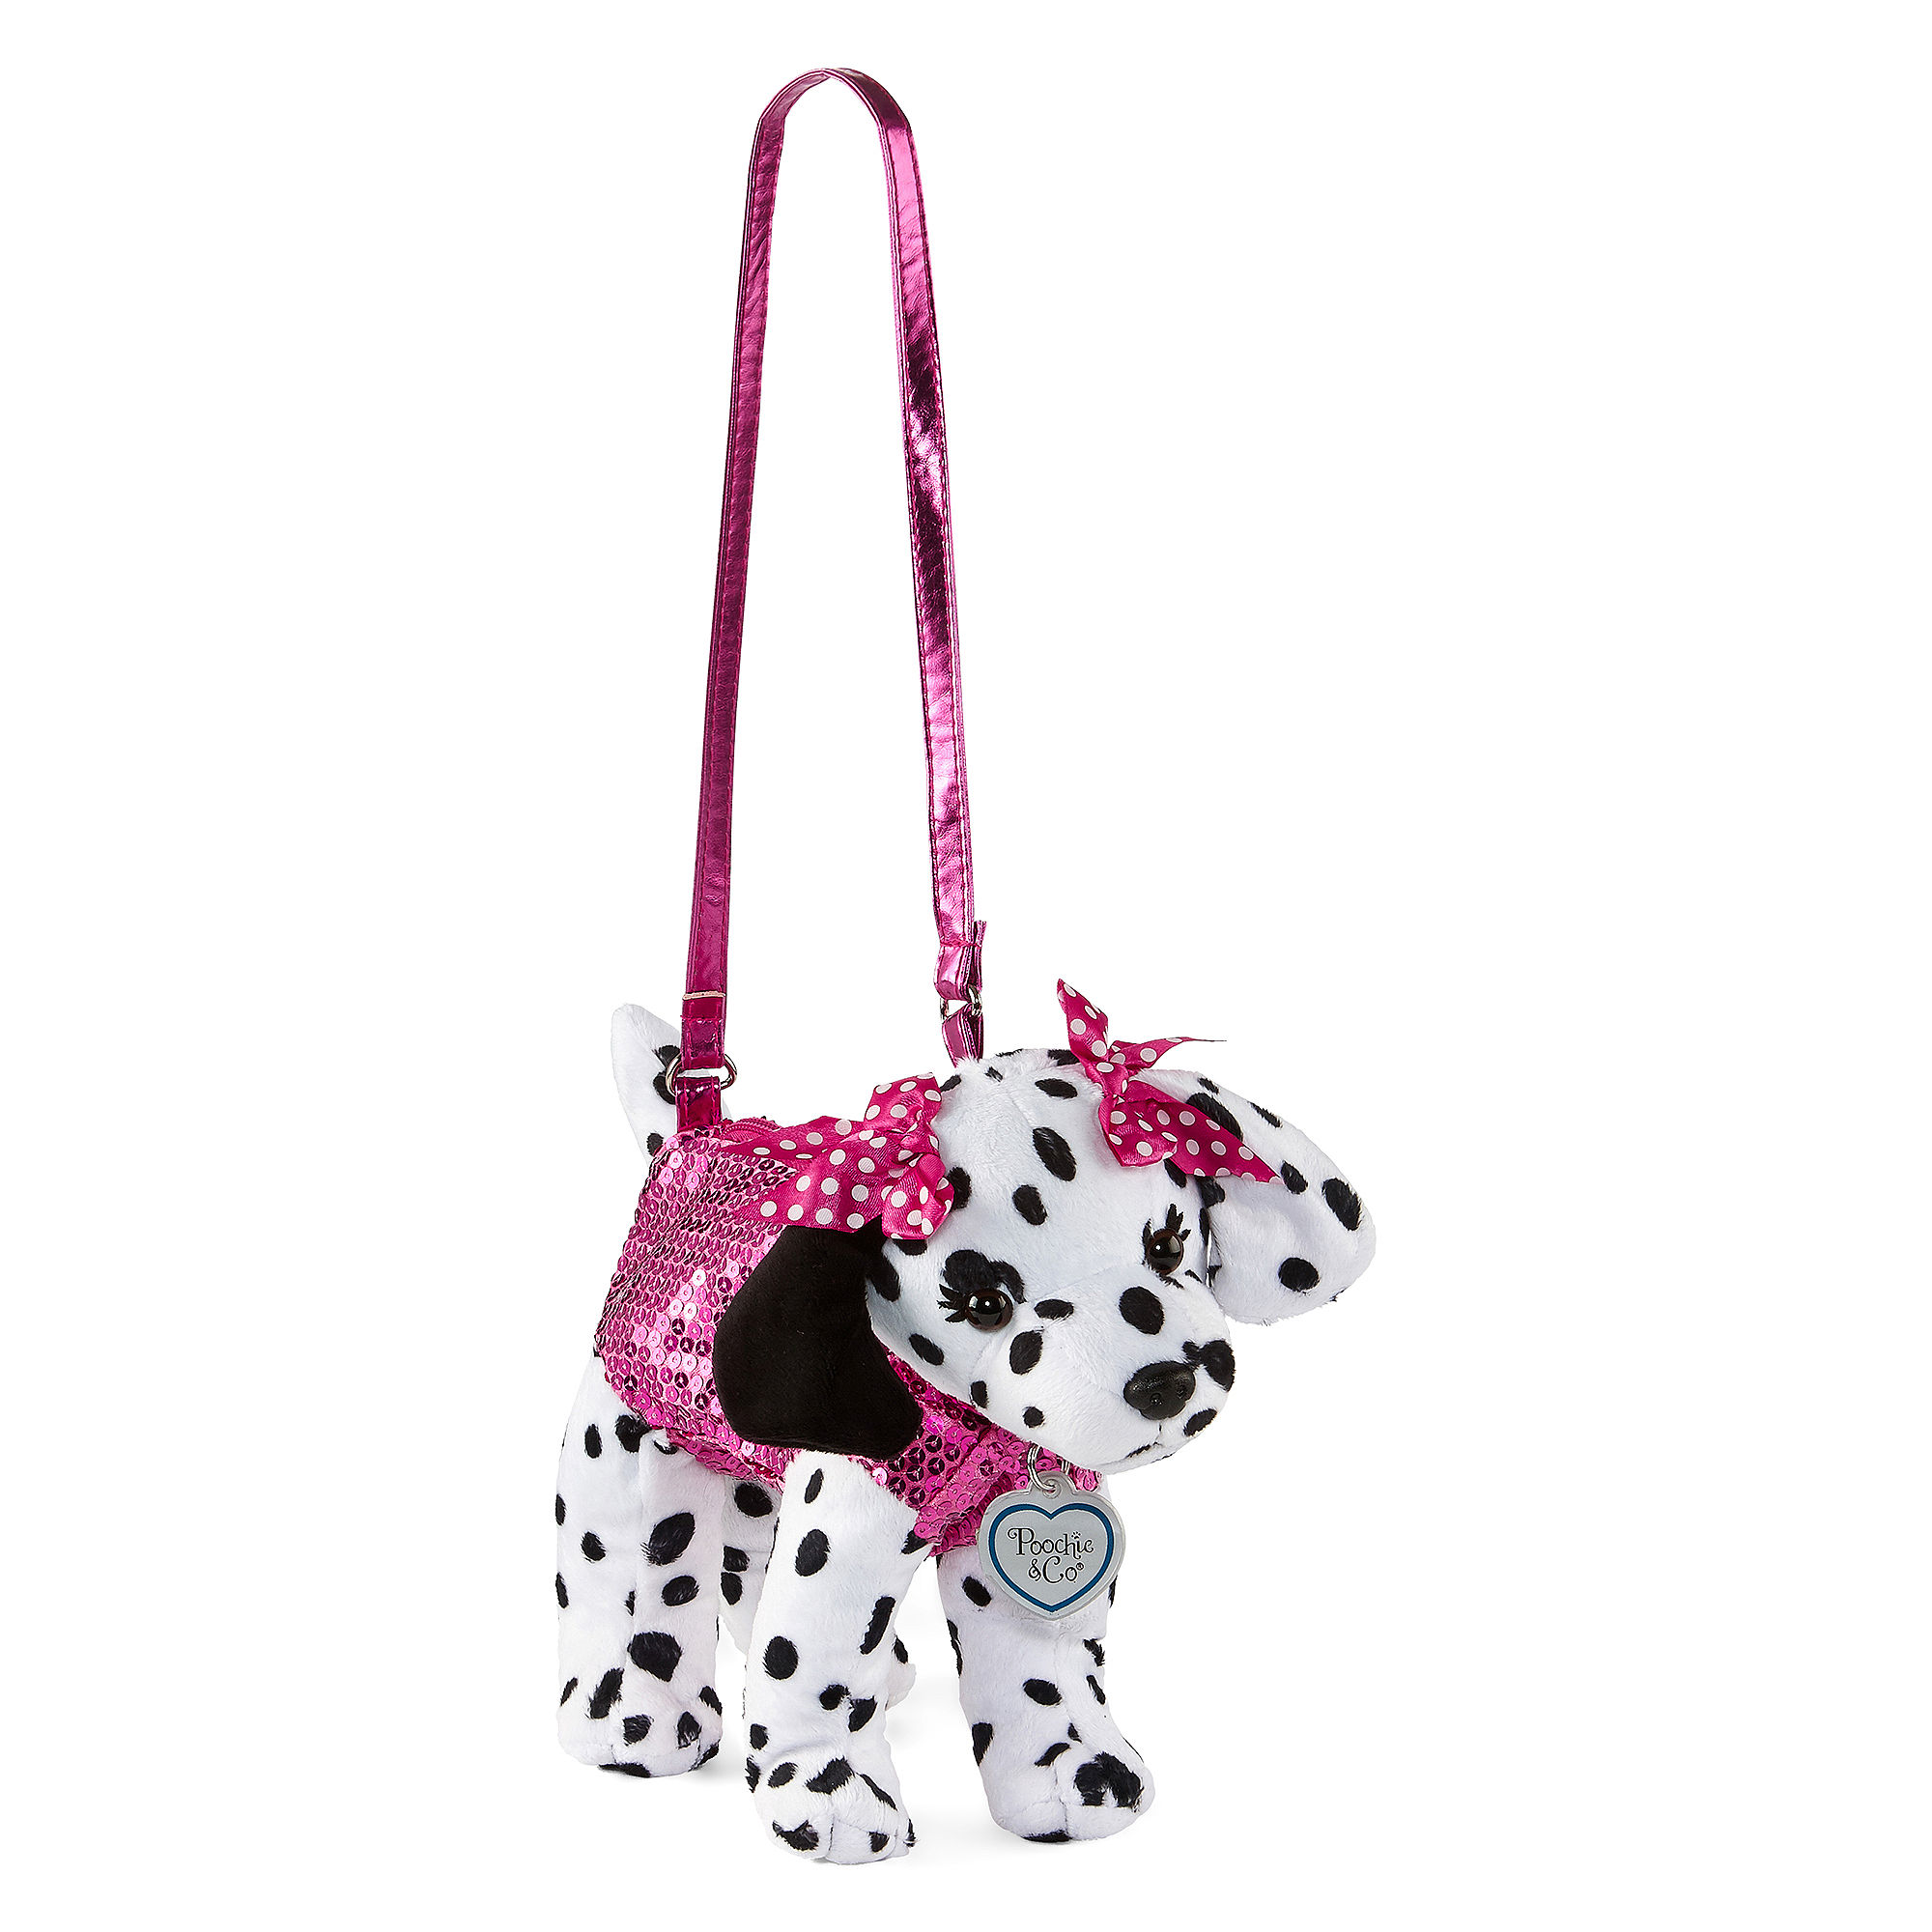 Upc 632878190943 Product Image For Poochie Co Dalmatian Sequins Purse S Upcitemdb